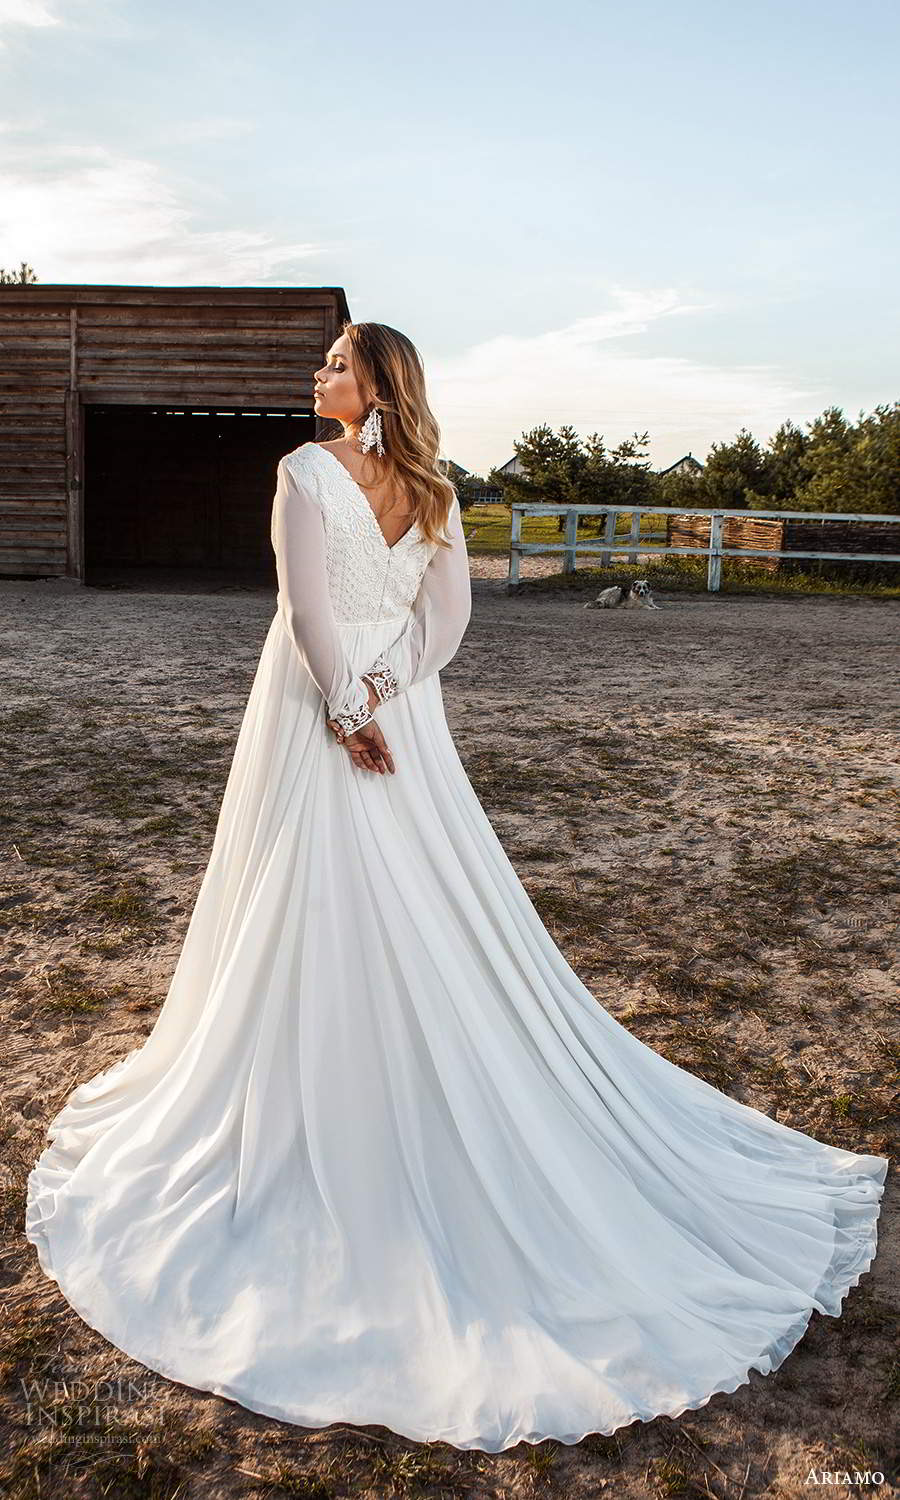 ariamo 2021 plus bridal long bishop sleeves v neckline embellished bodice a line wedding dress (9) bv